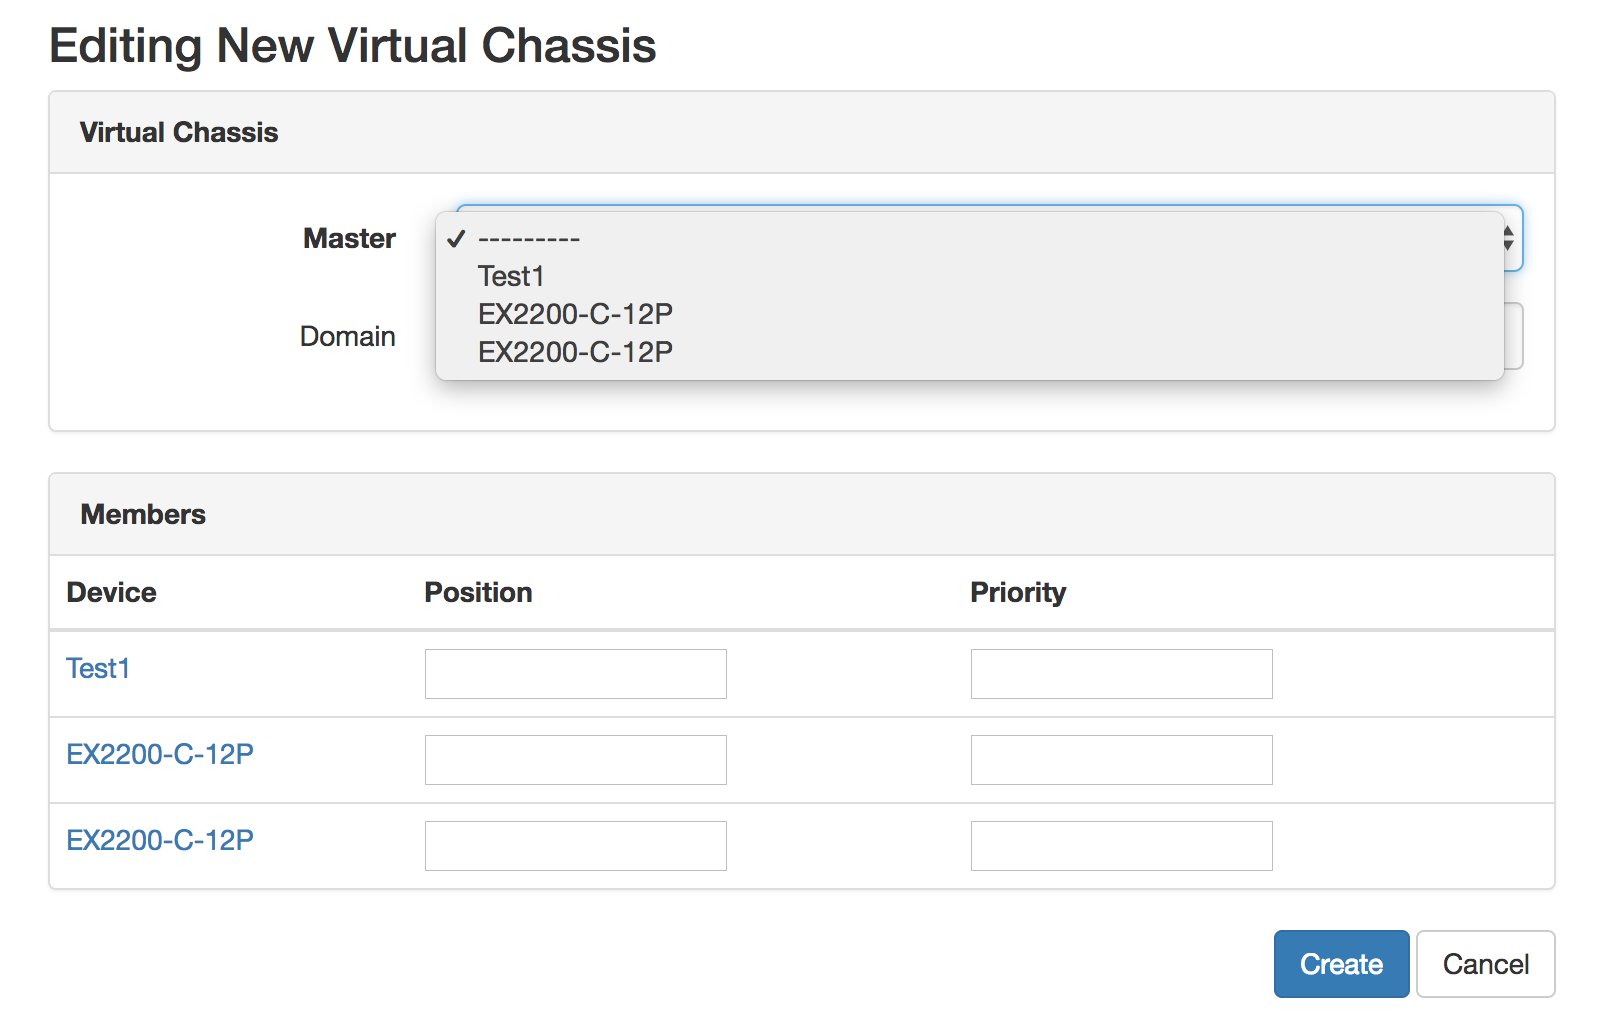 When creating/editing a Virtual Chassis, unnamed devices need more